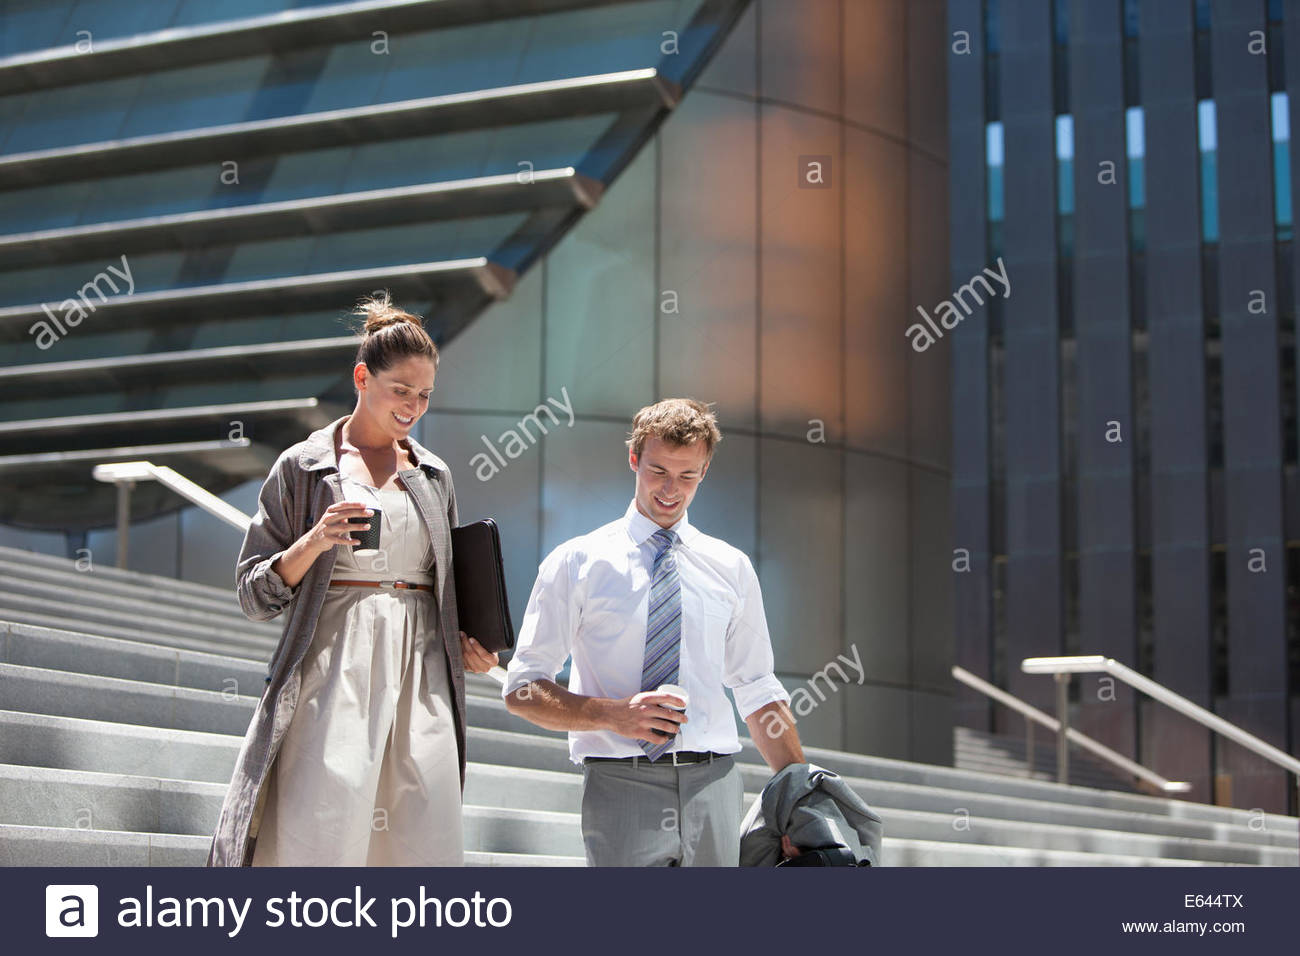 Business people walking down steps outdoors - Stock Image